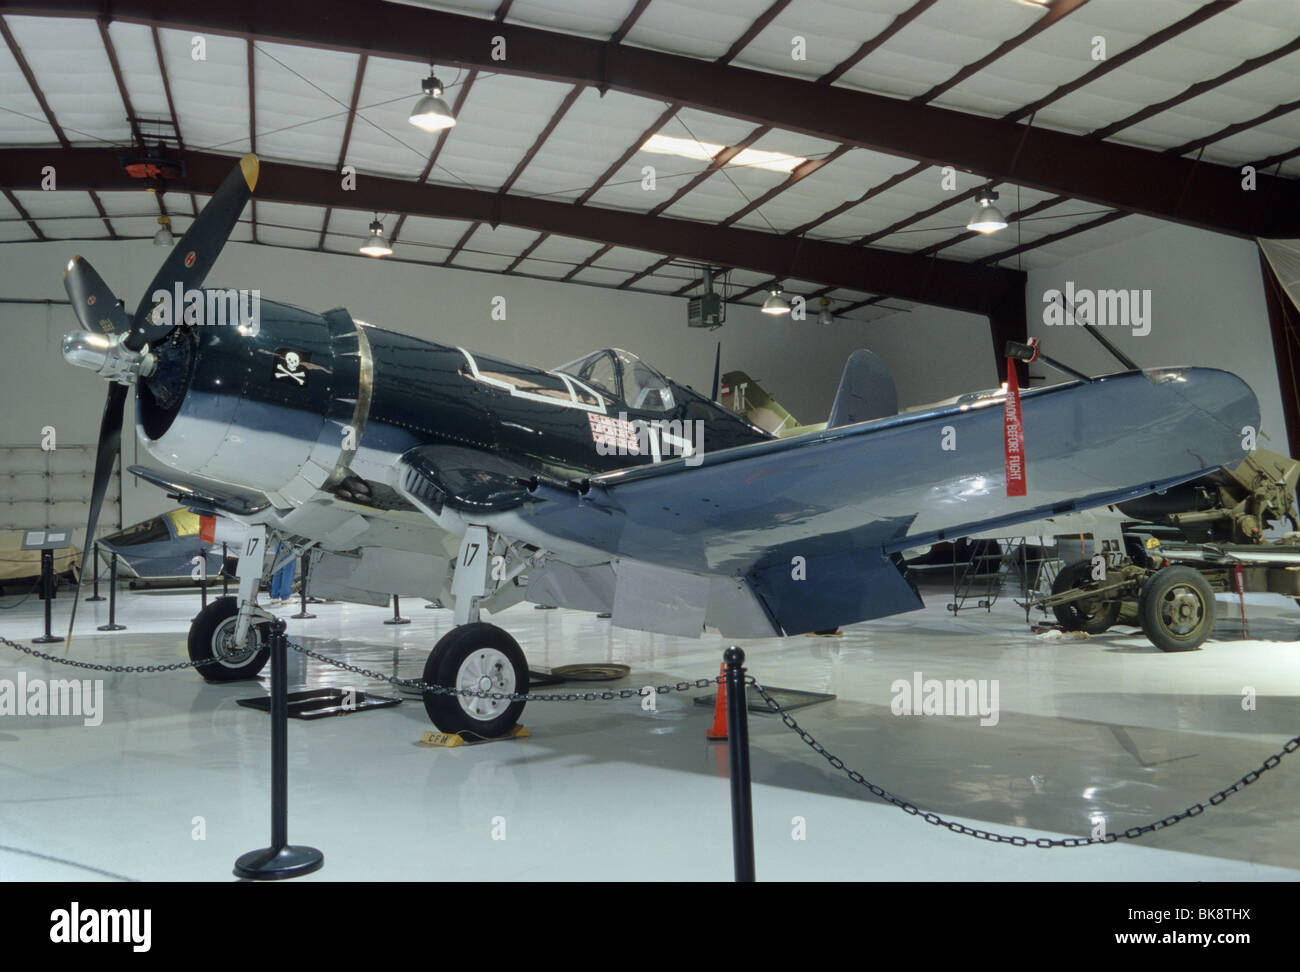 Goodyear/Chance Vought FG-1D (F4U) Corsair WWII fighter plane at Cavanaugh Flight Museum, Addison Airport, Dallas, - Stock Image